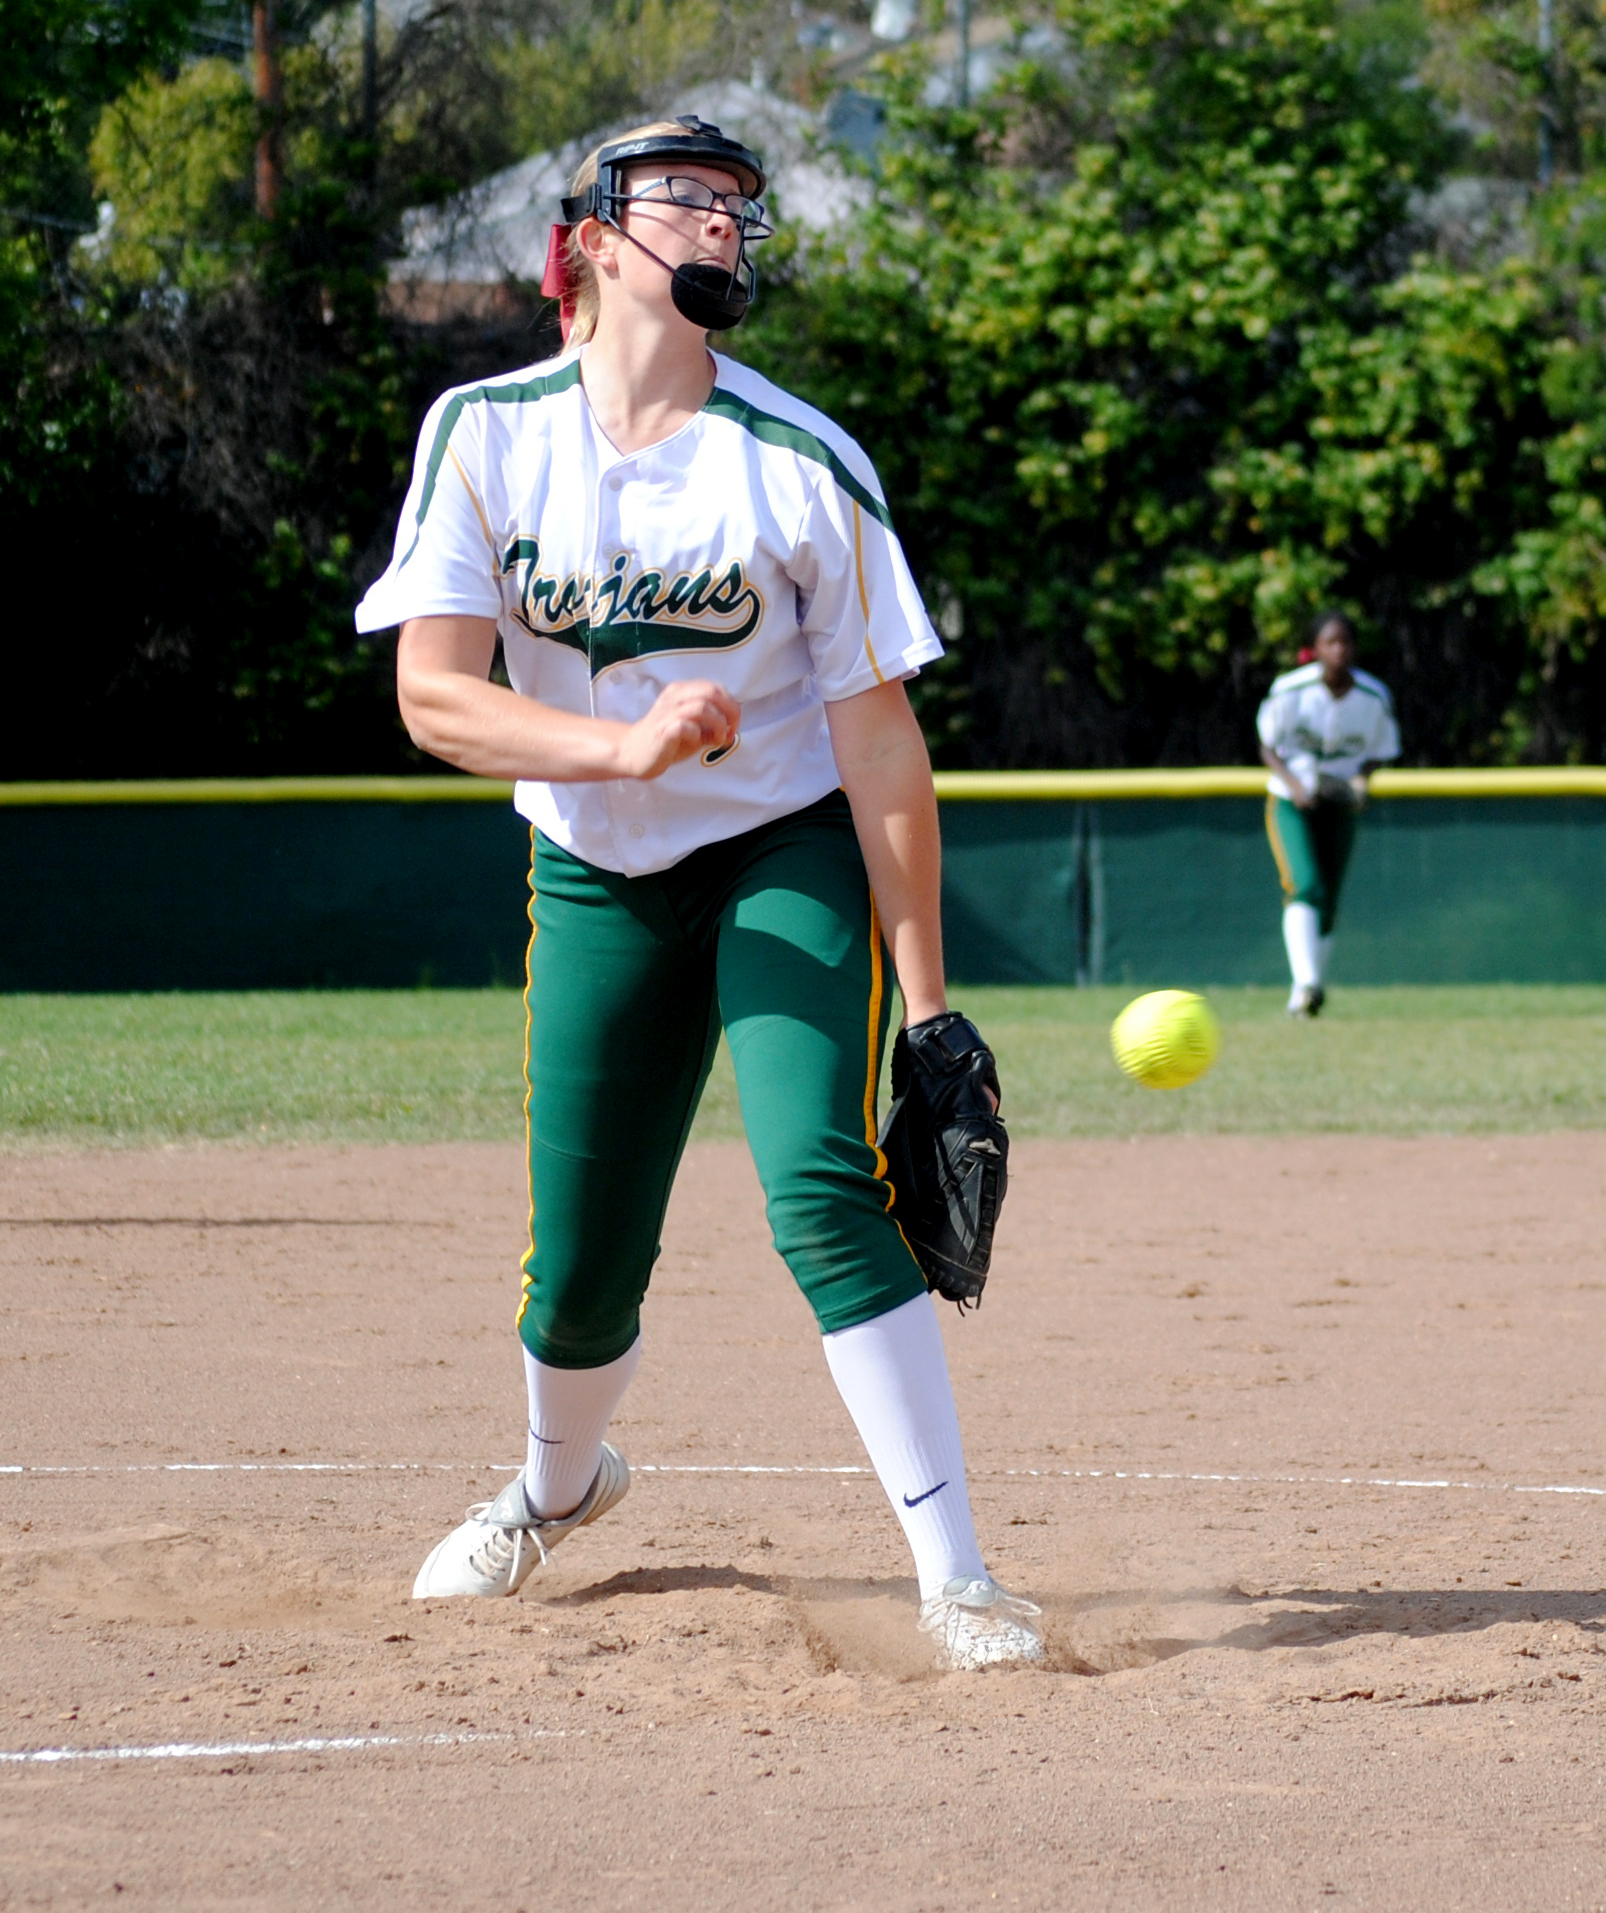 Delaney Heller releases an amazing pitch. Photo by Neo Diesta.